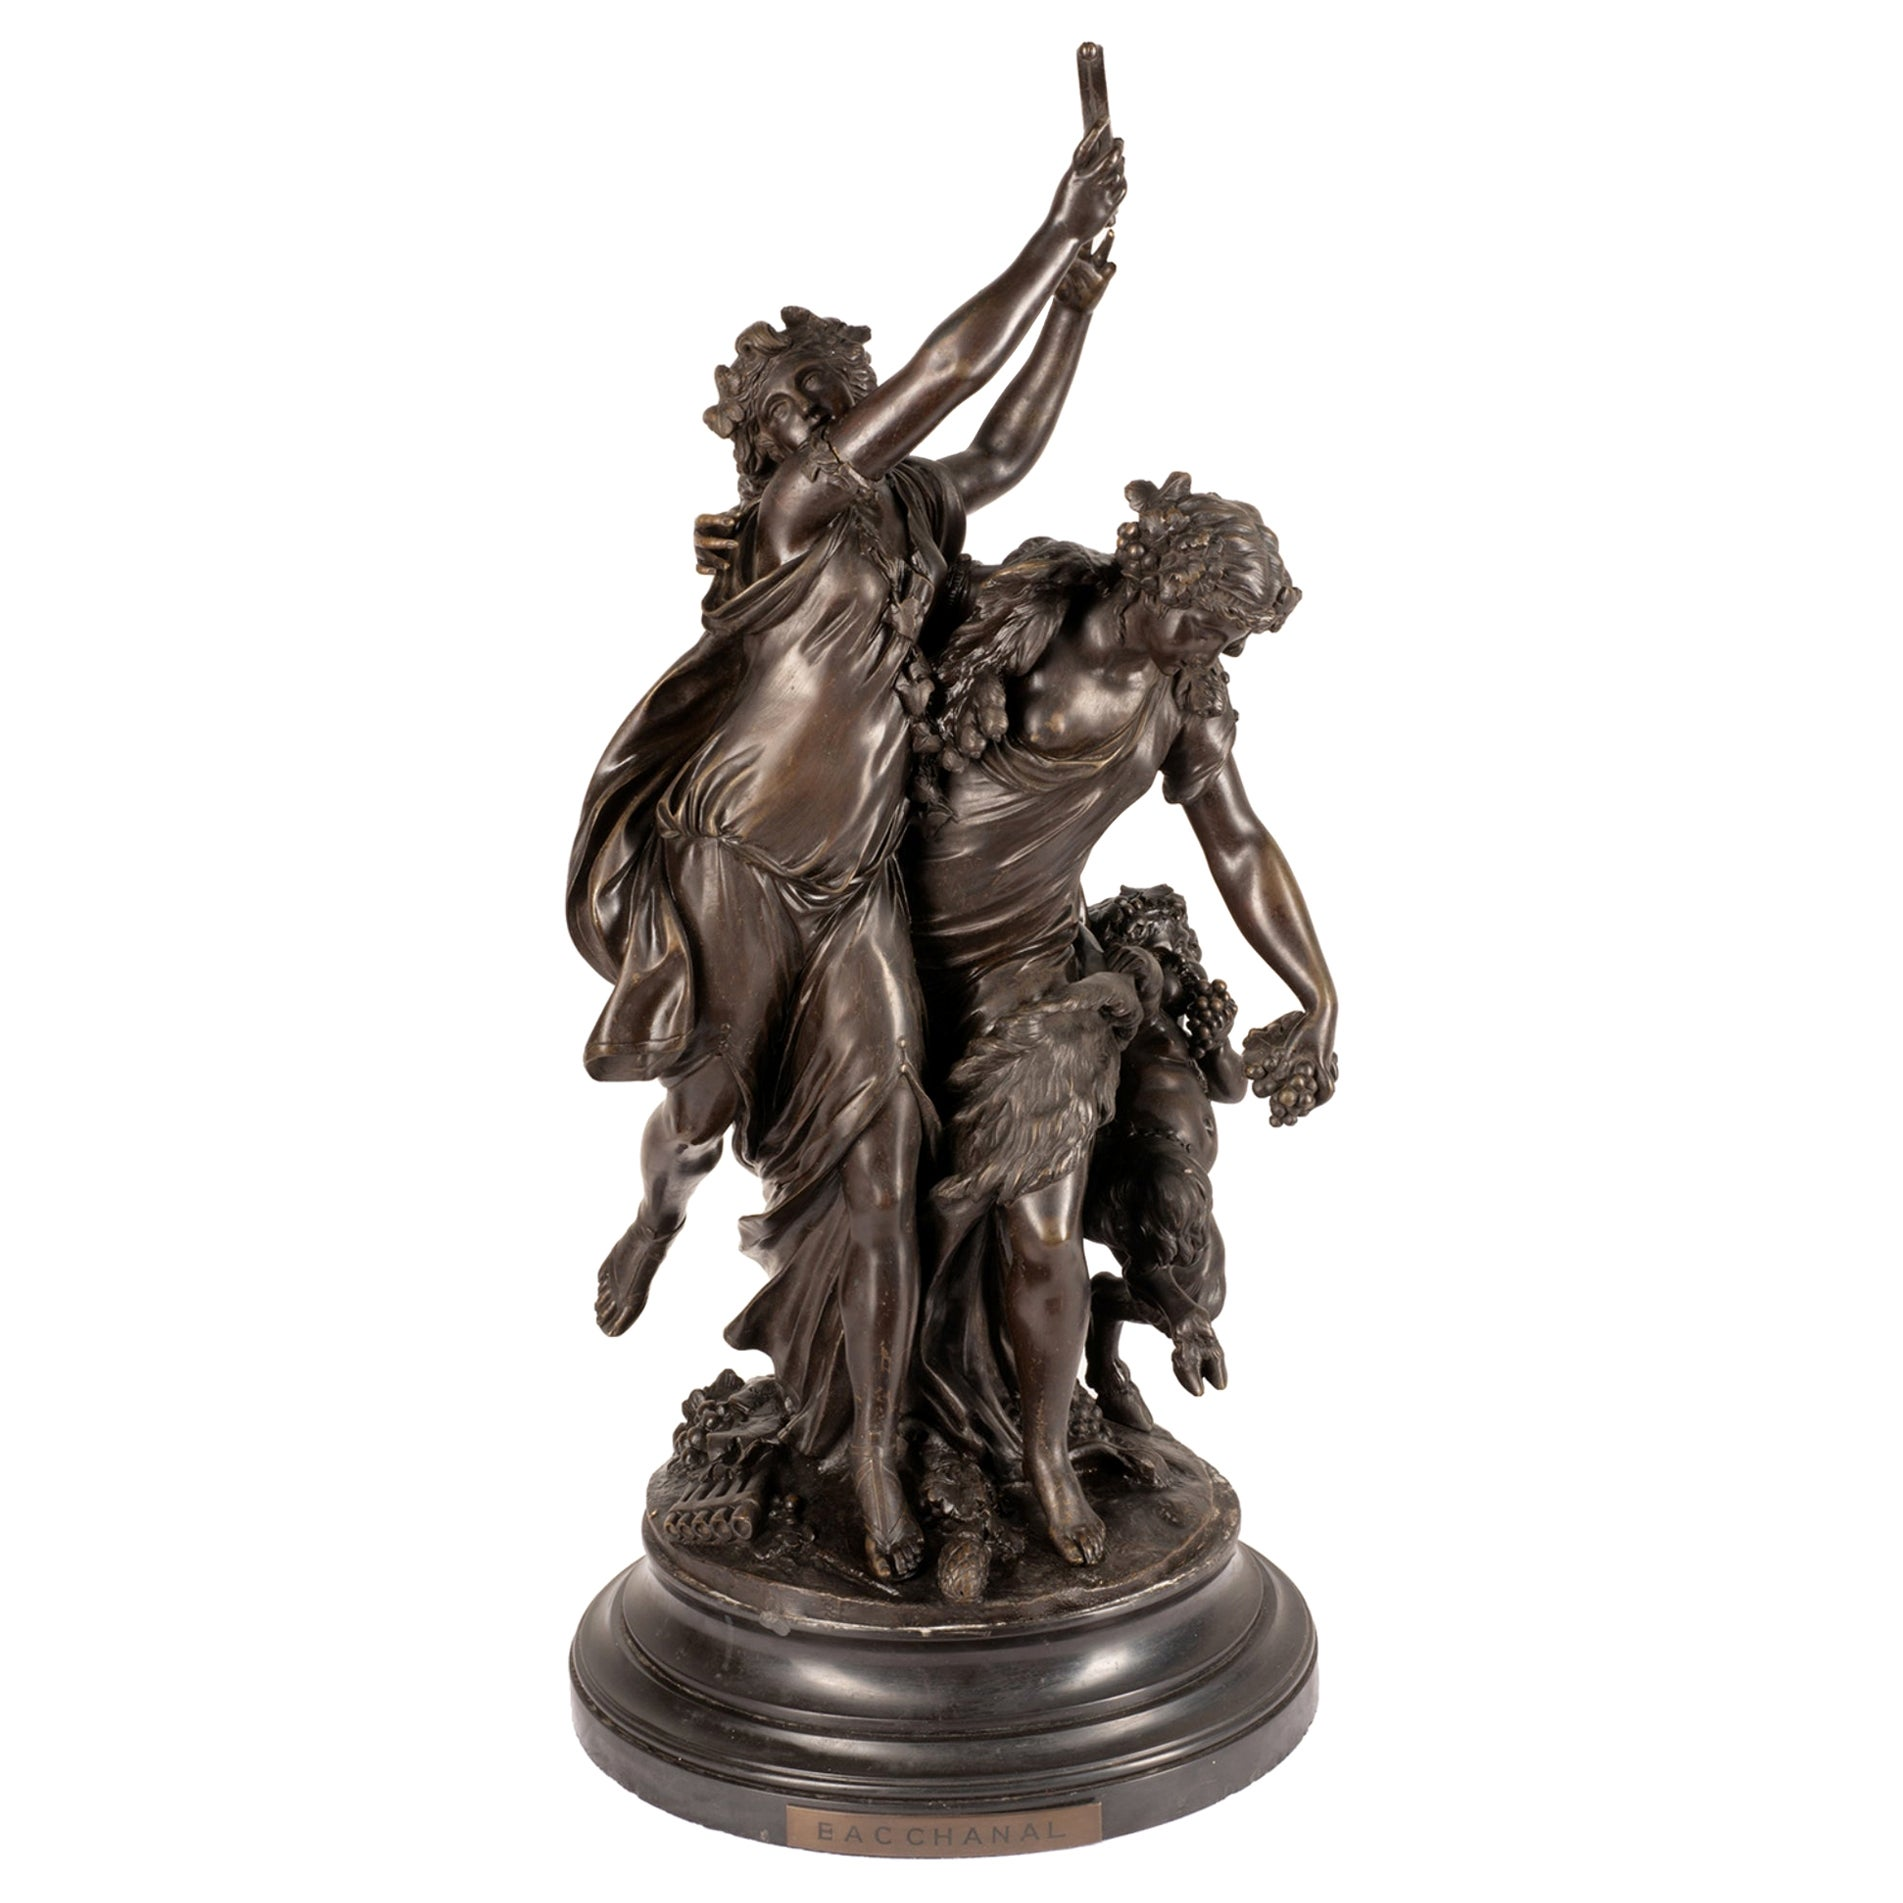 19th Century Clodian Bronze of Classical Bacchus Influenced Dancing Maidens